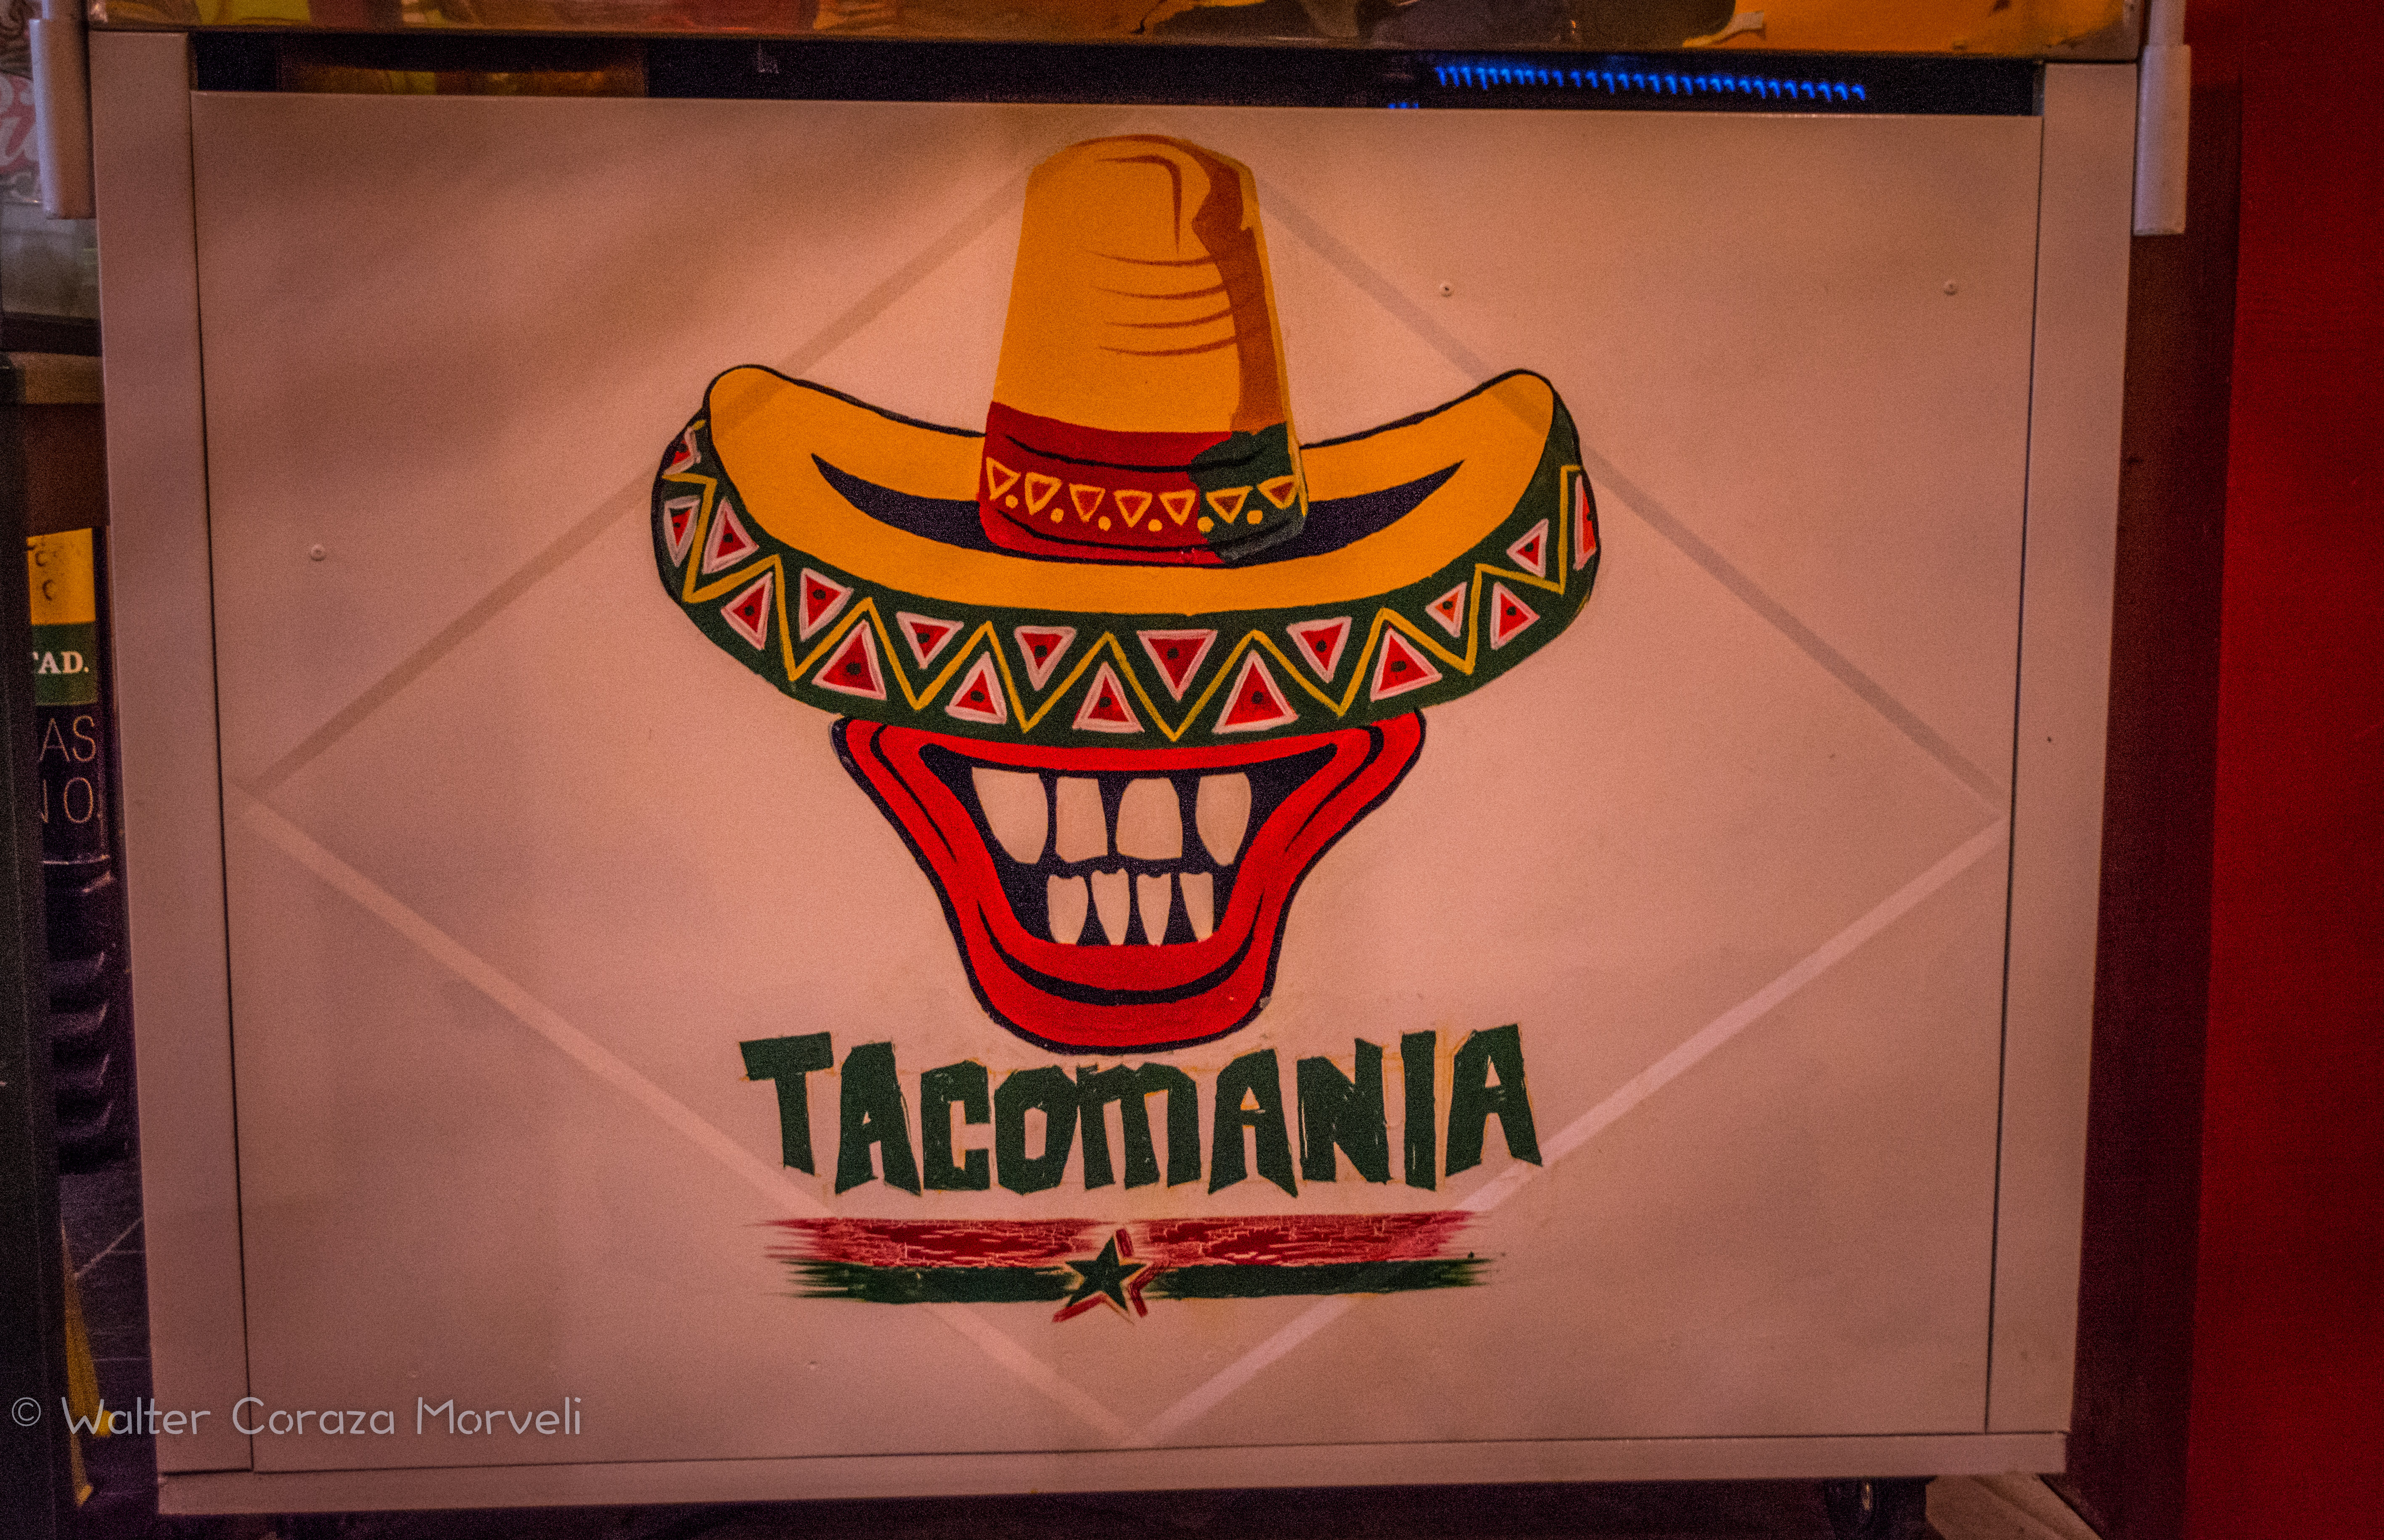 This the Tacomania Brand